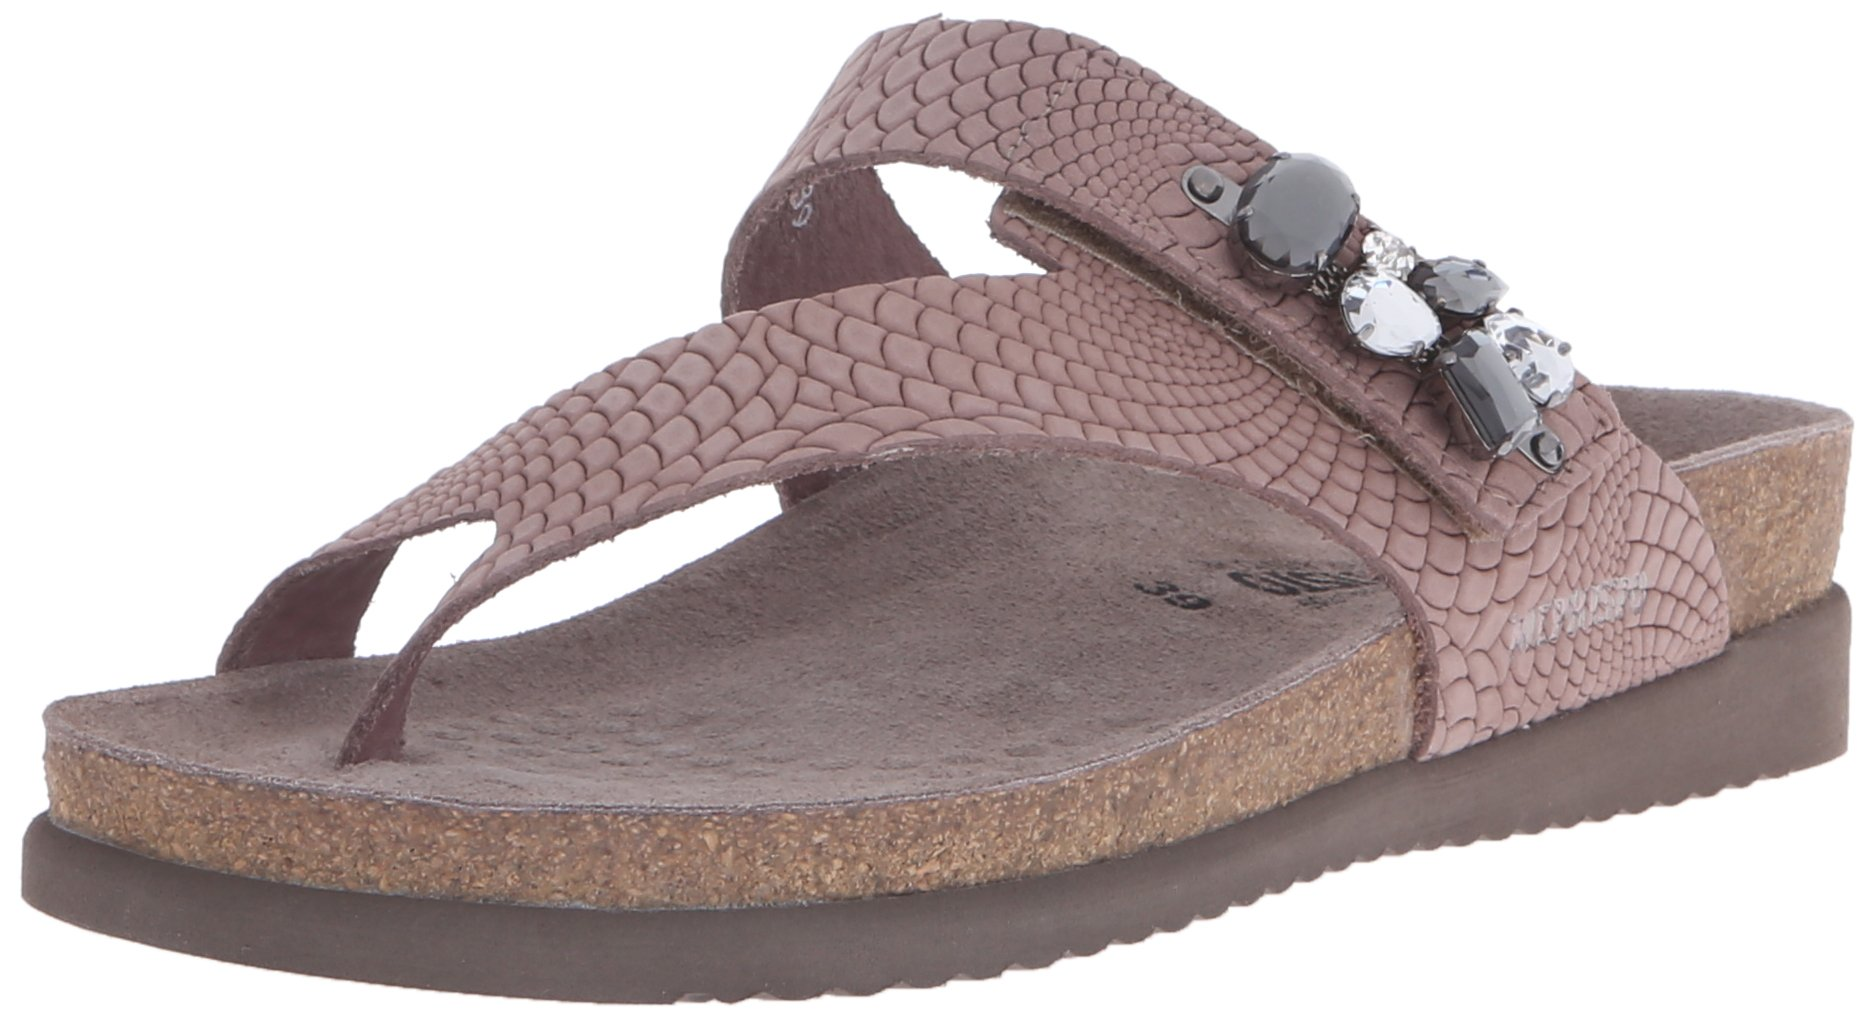 Mephisto Women's Halice Flip Flop, Old Pink Rio, 9 M US by Mephisto (Image #1)